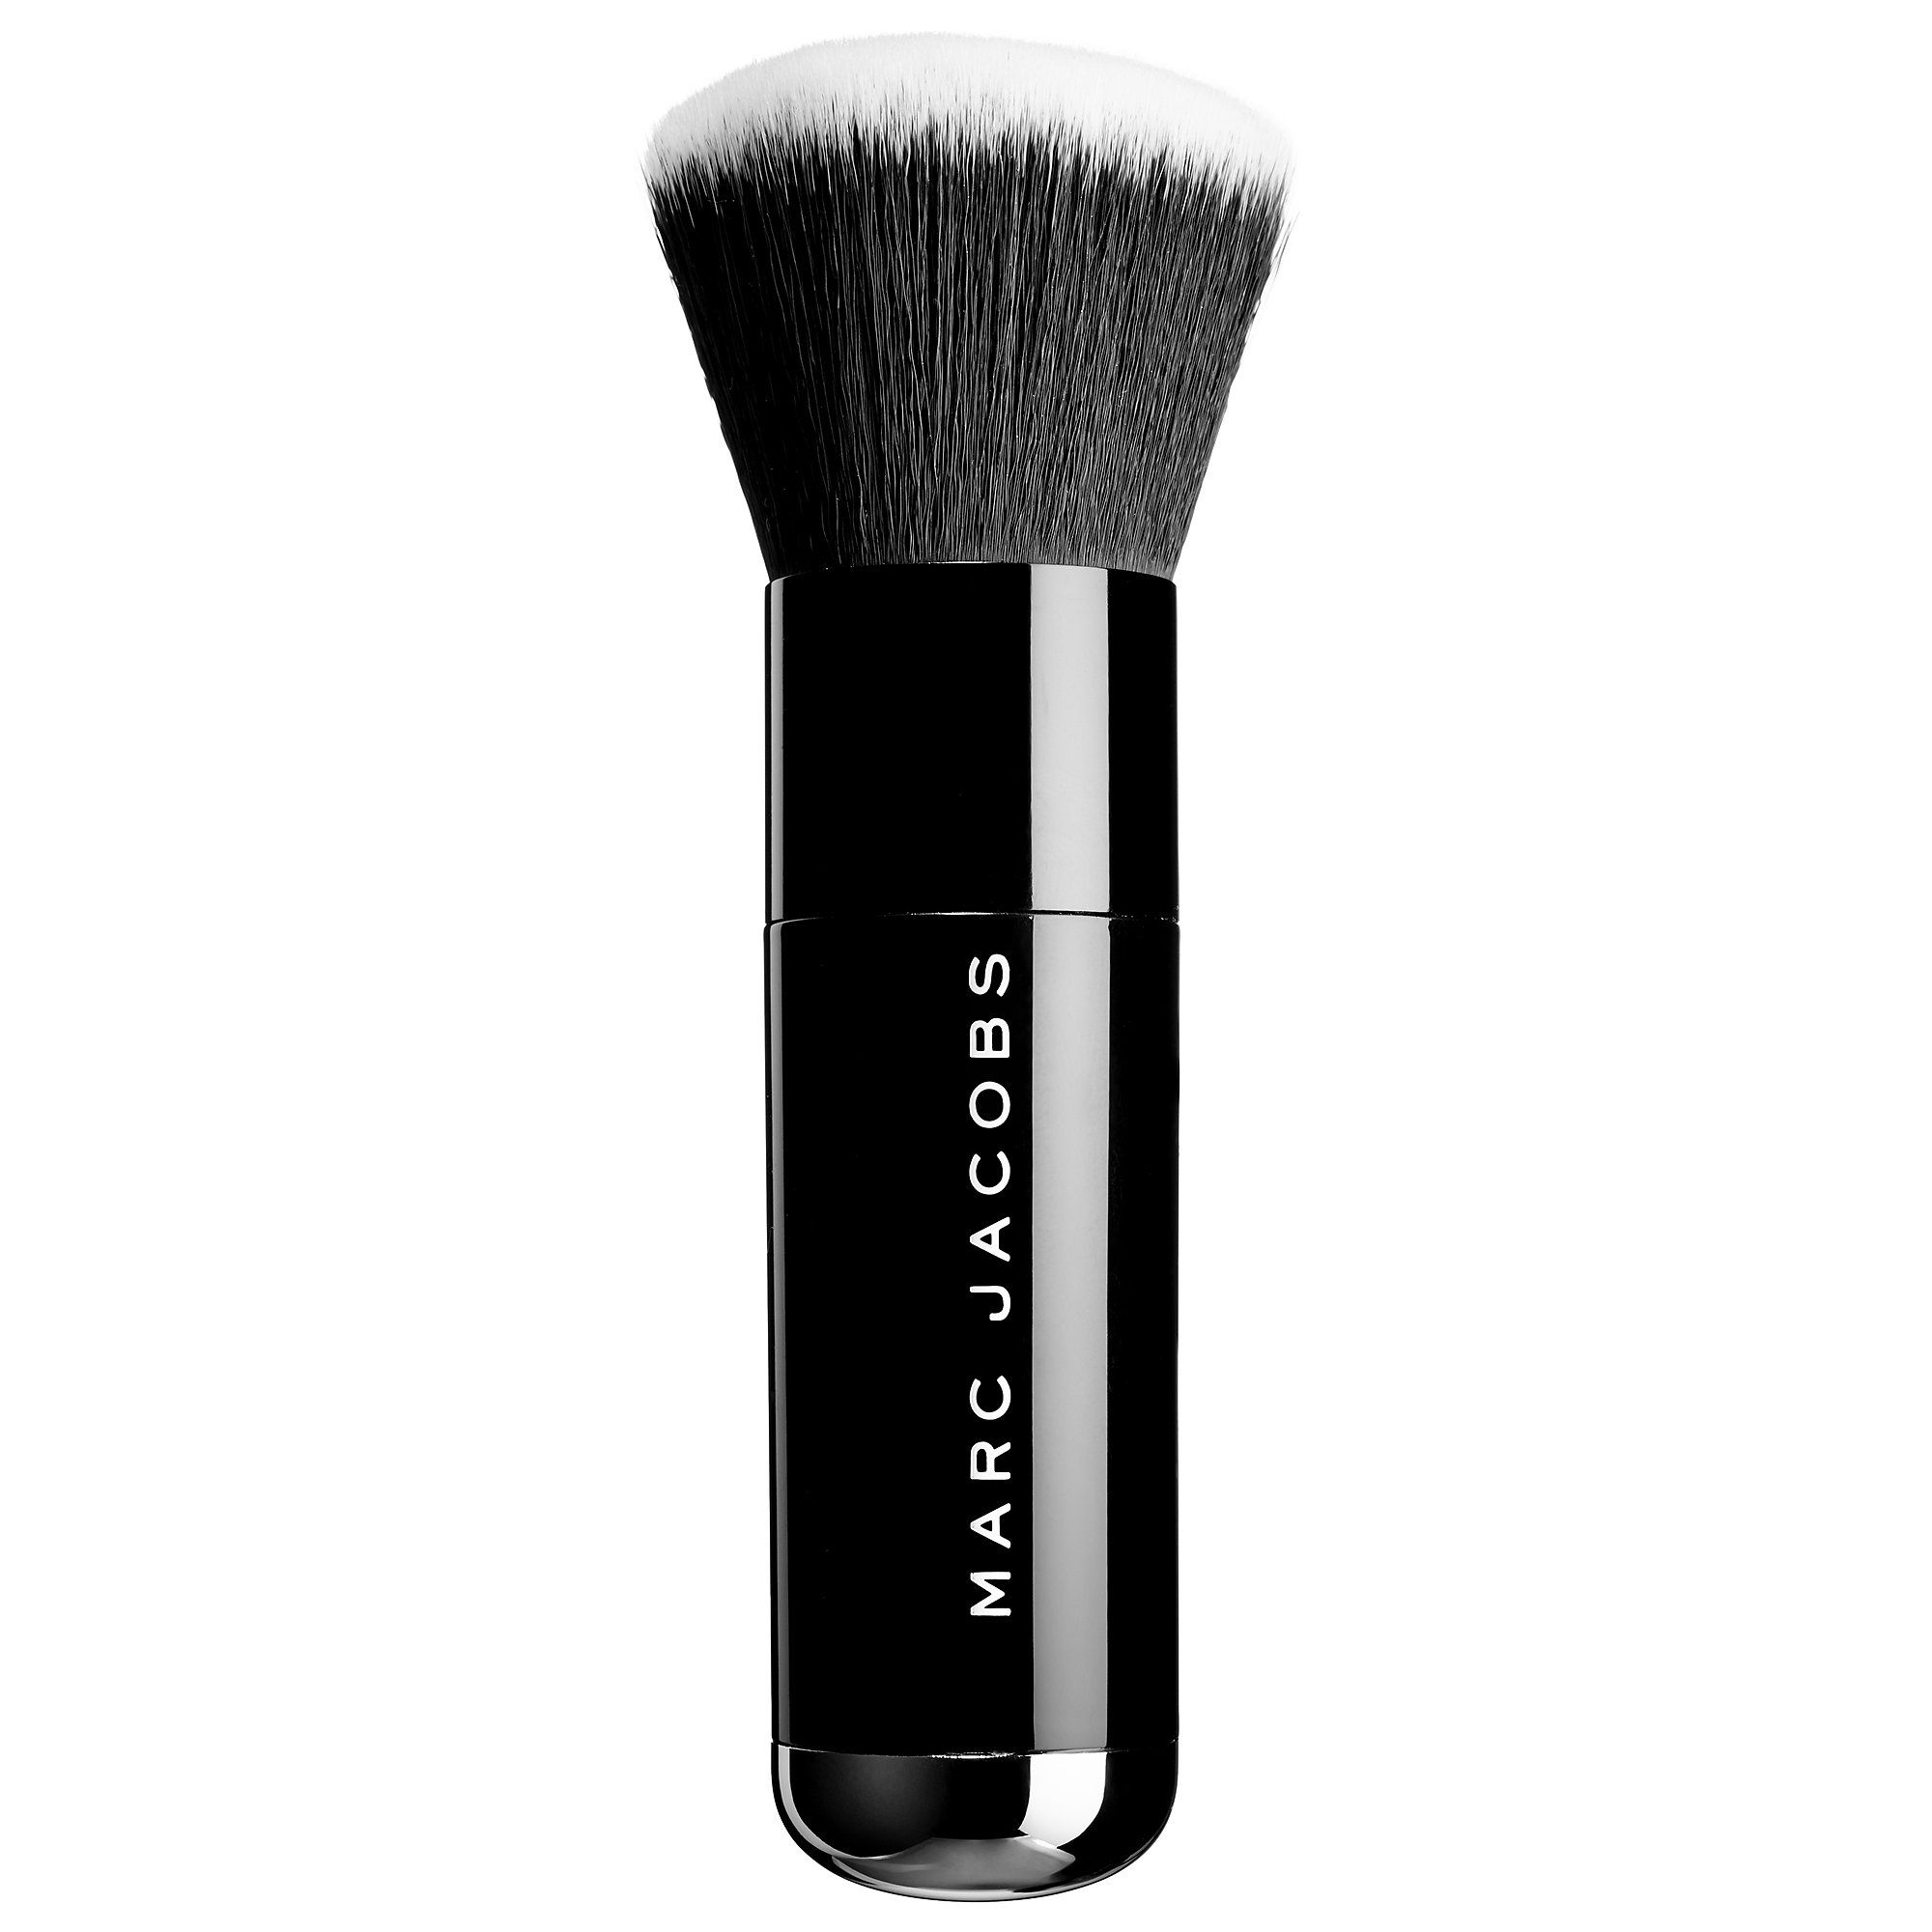 What it isA liquid foundation buffing brush that achieves